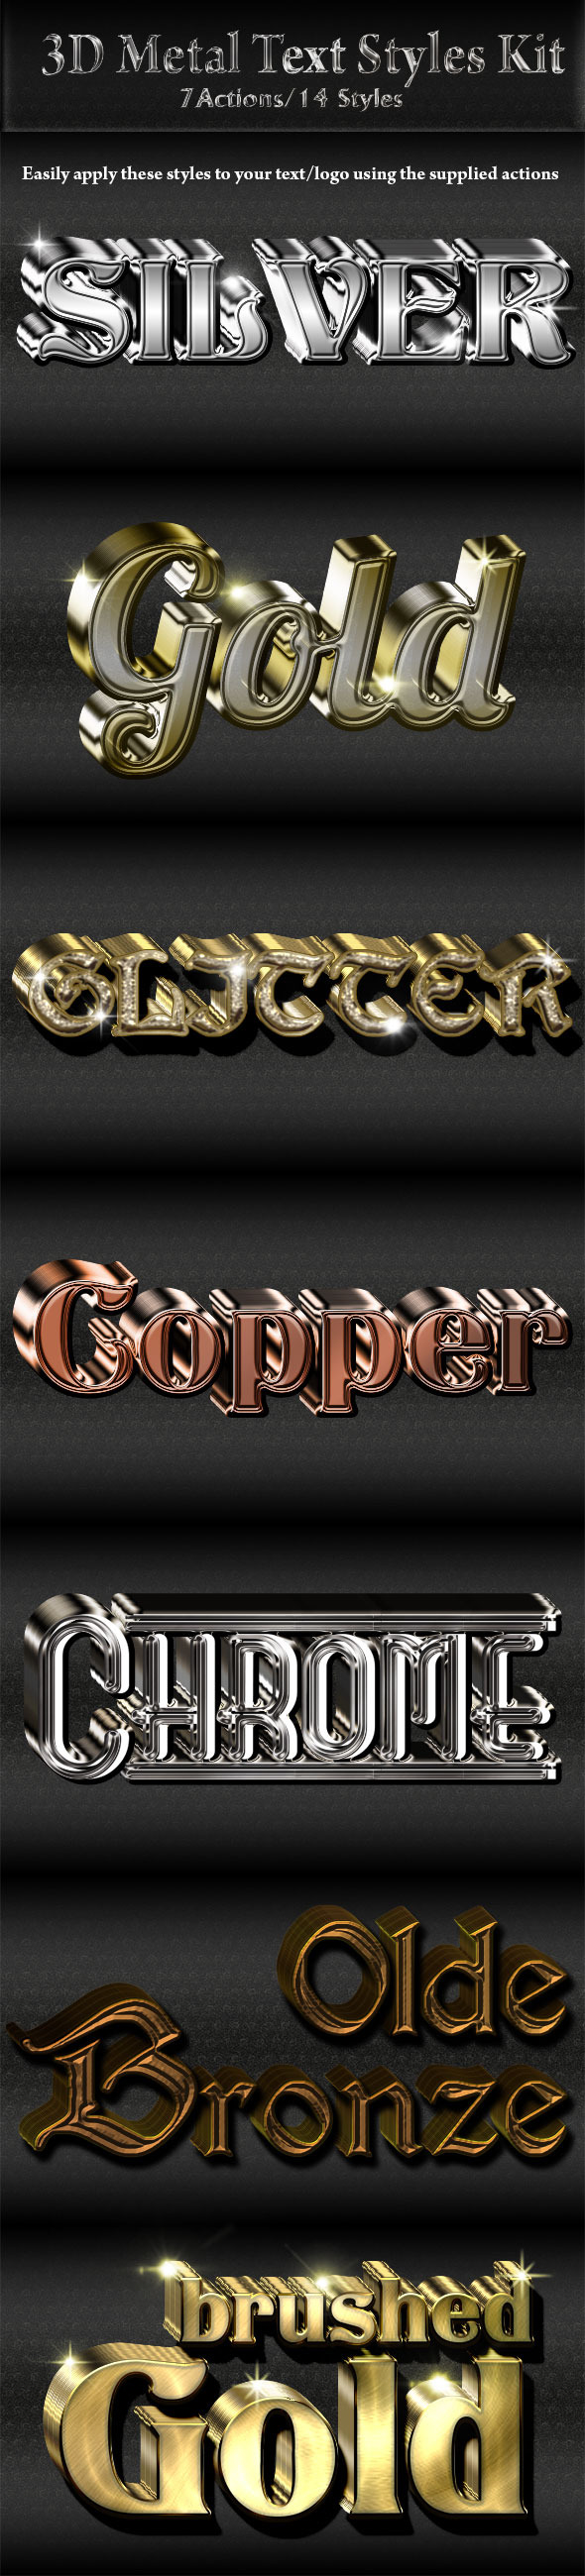 3D Metal Text/Logo Styles Kit - Text Effects Actions